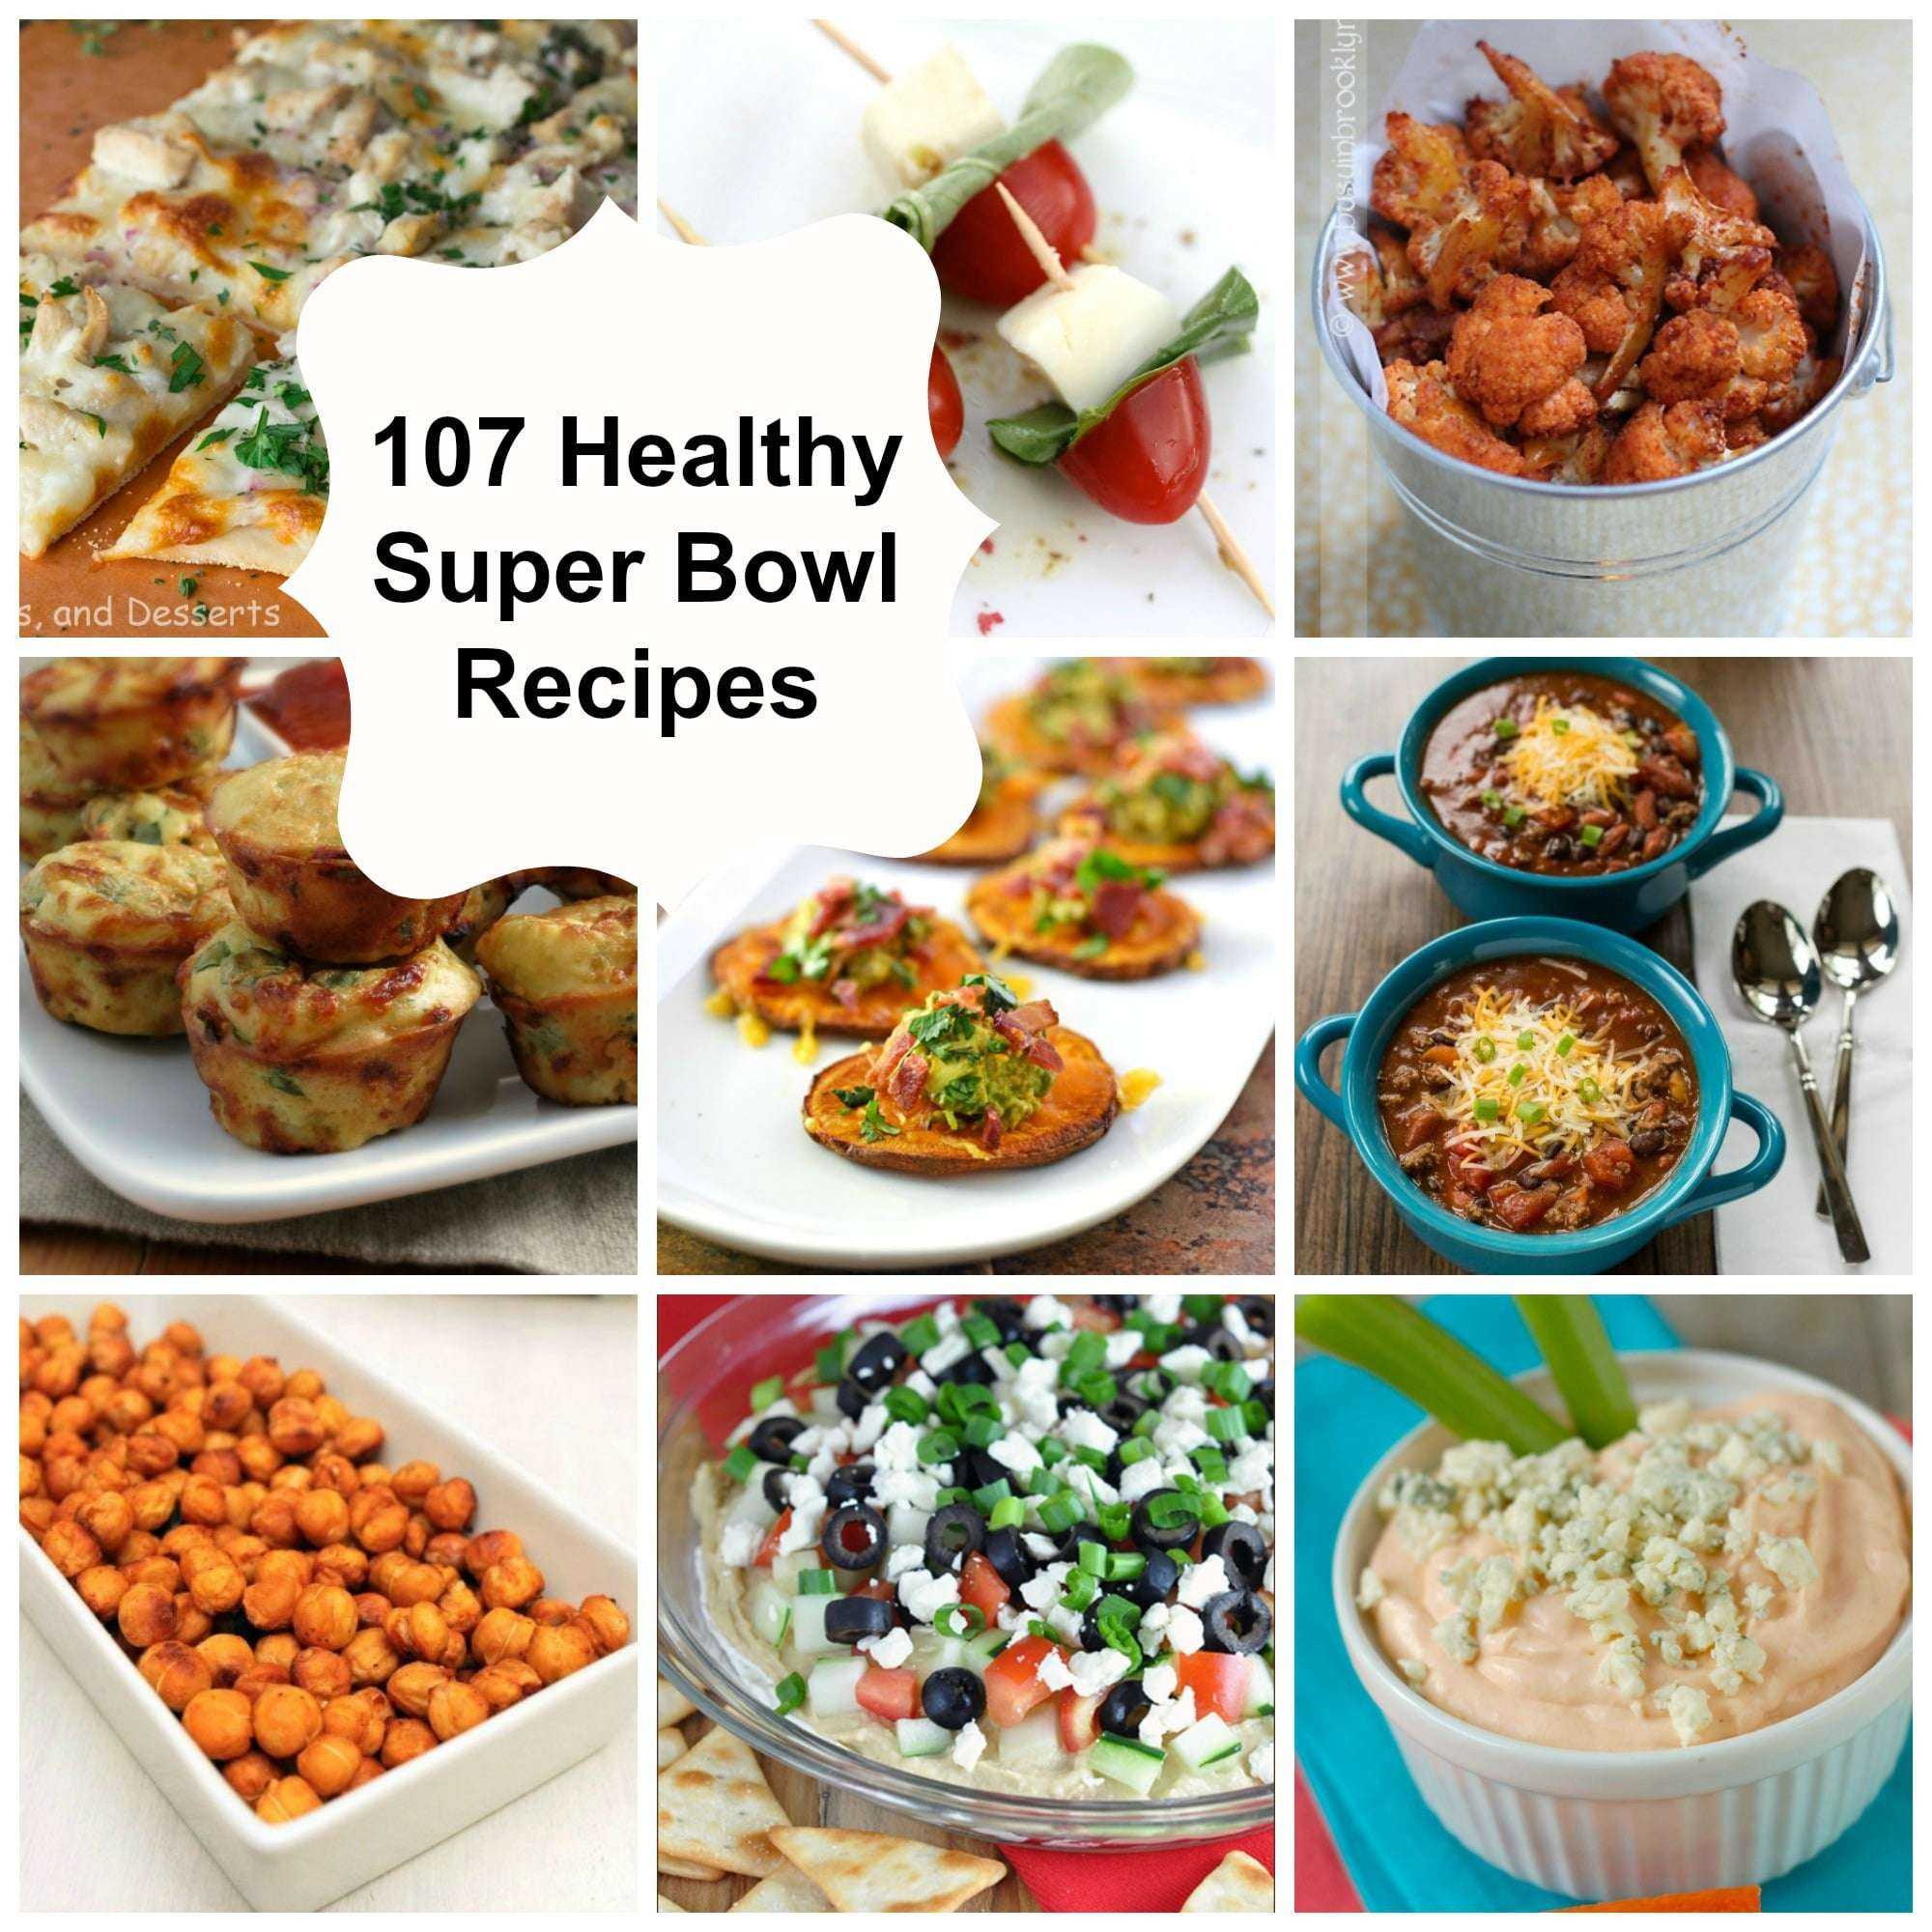 Healthy Super Bowl Recipes the top 20 Ideas About 107 Healthy Super Bowl Recipes A Cedar Spoon